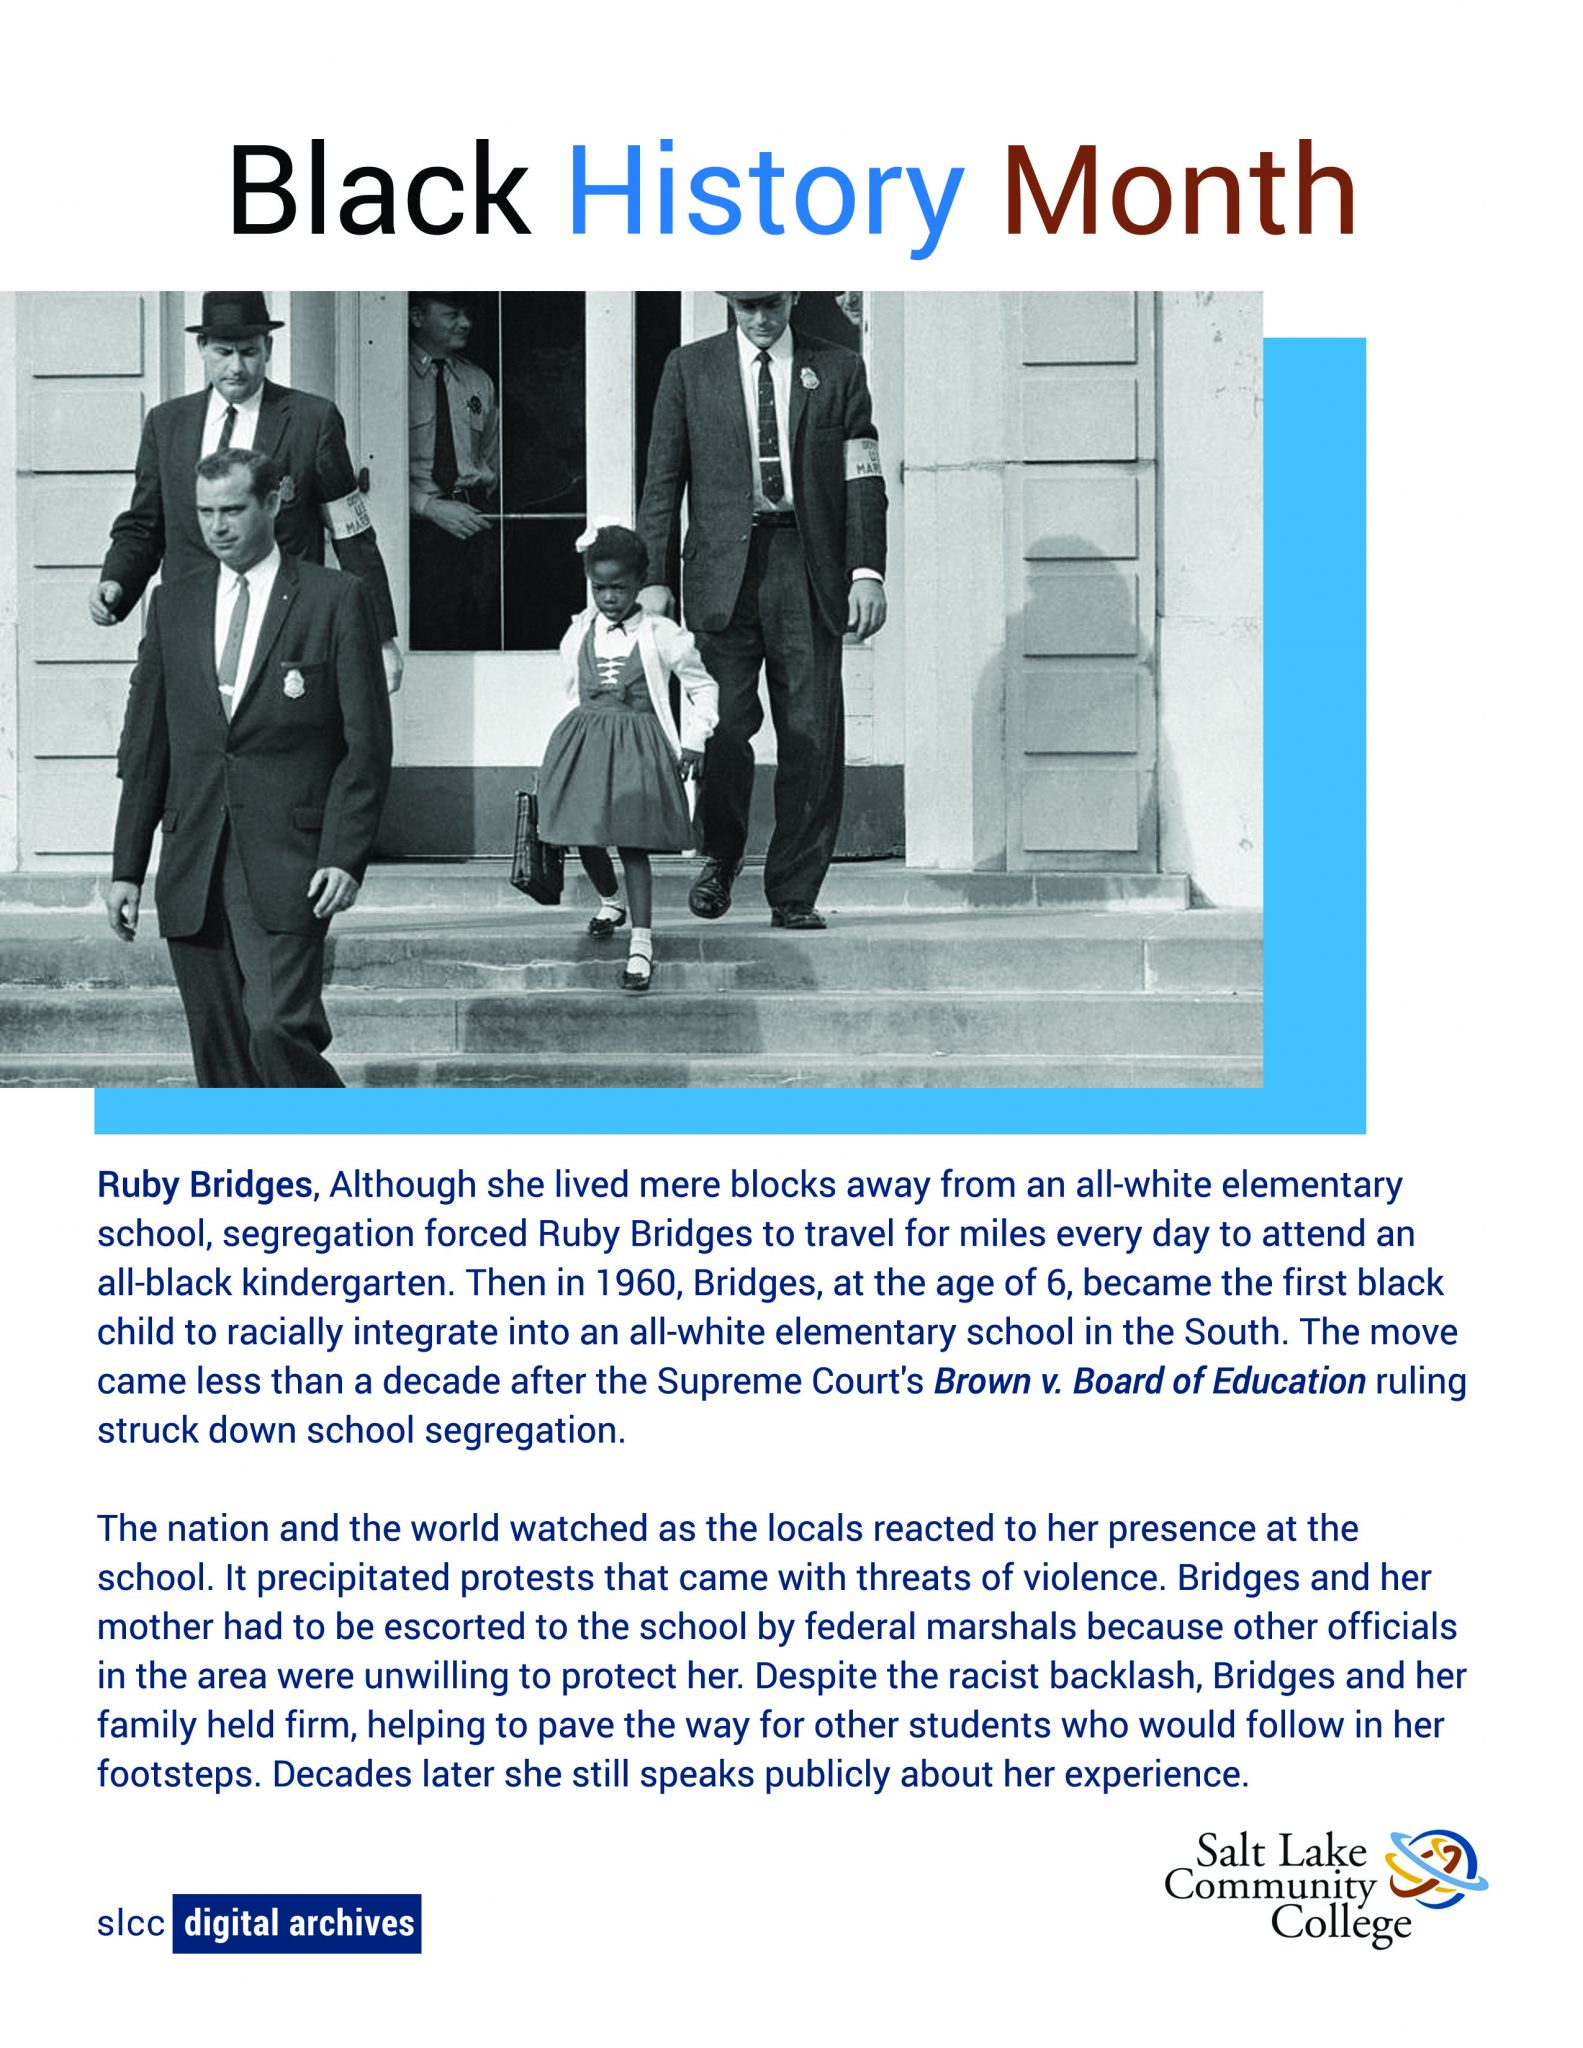 Photo of Ruby Bridges being escorted to an all-white school by federal marshals.